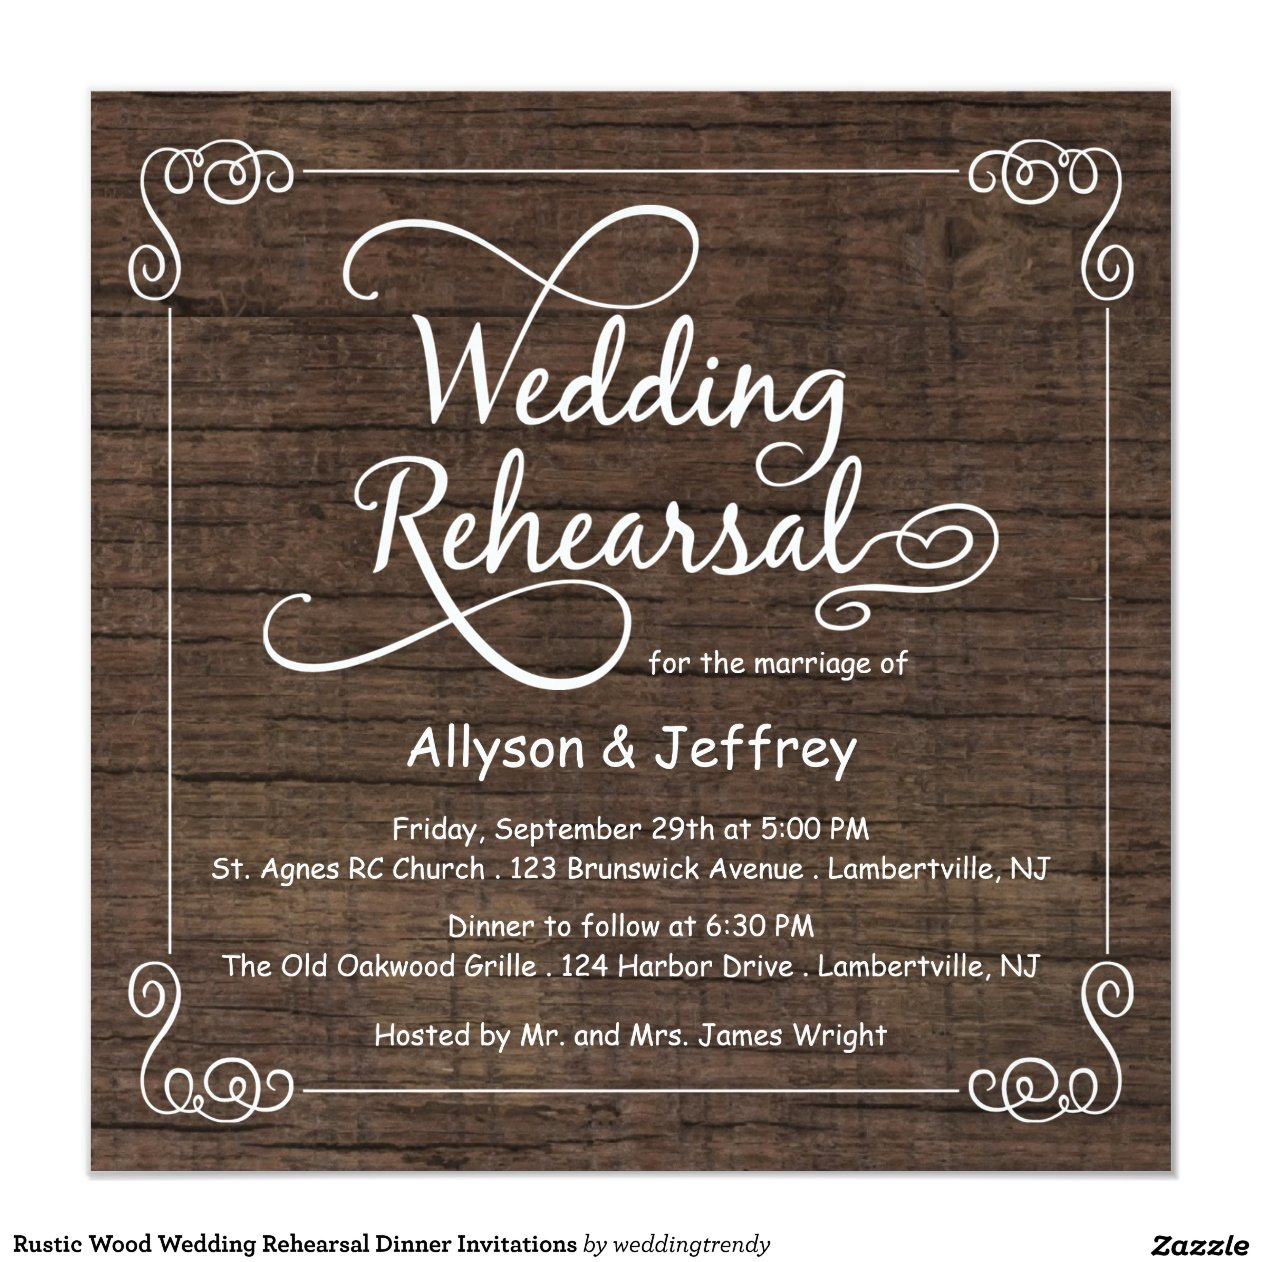 Rustic Rehearsal Dinner Invitations was very inspiring ideas you may choose for invitation ideas